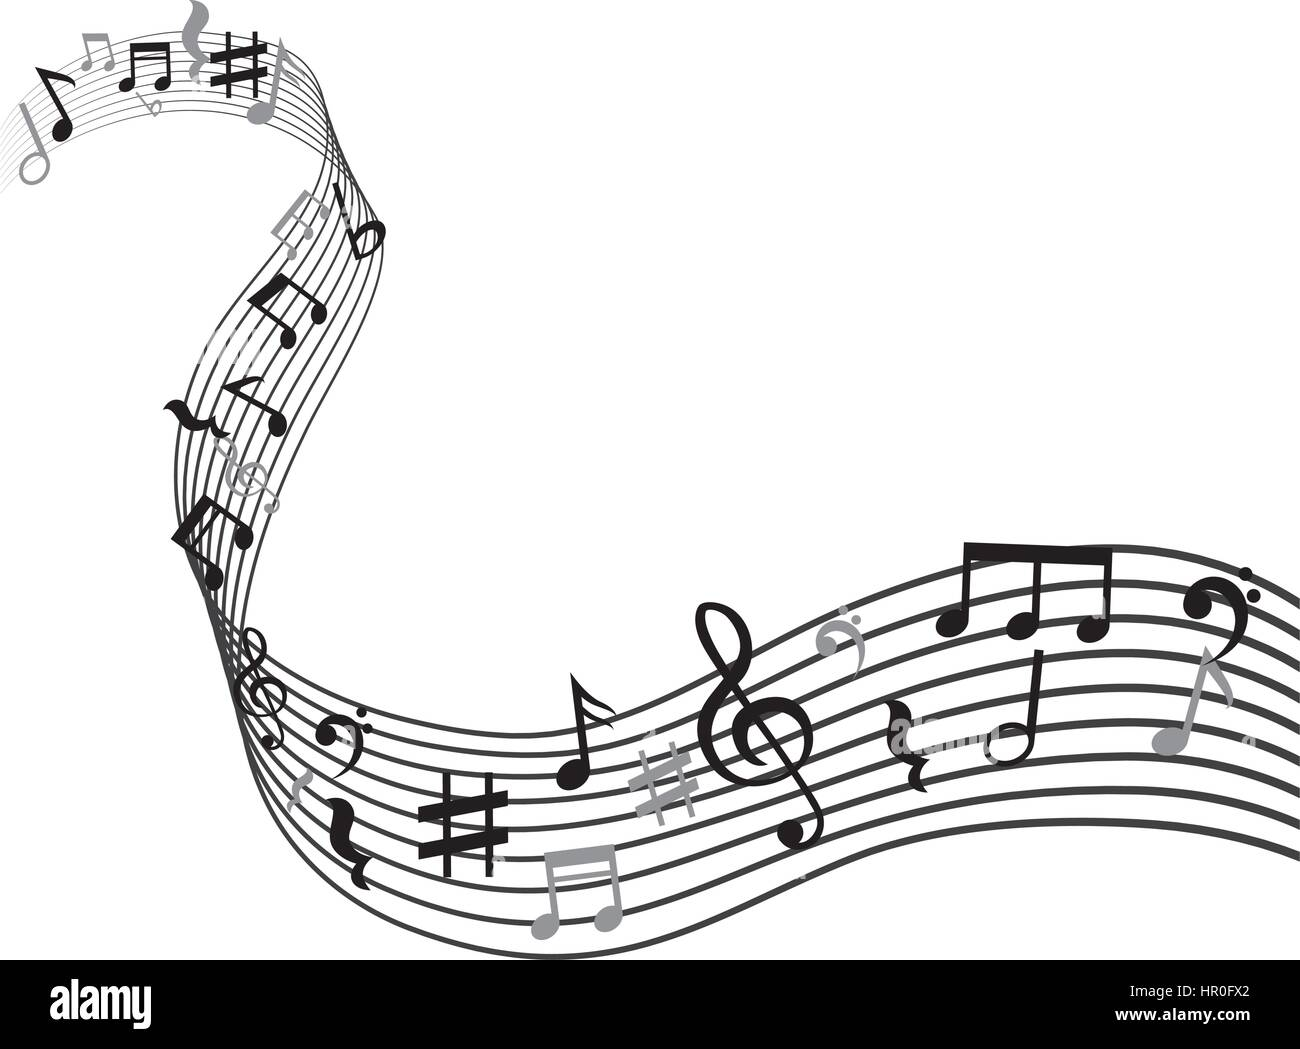 Music Notes Symbol Stock Vector Art Illustration Vector Image